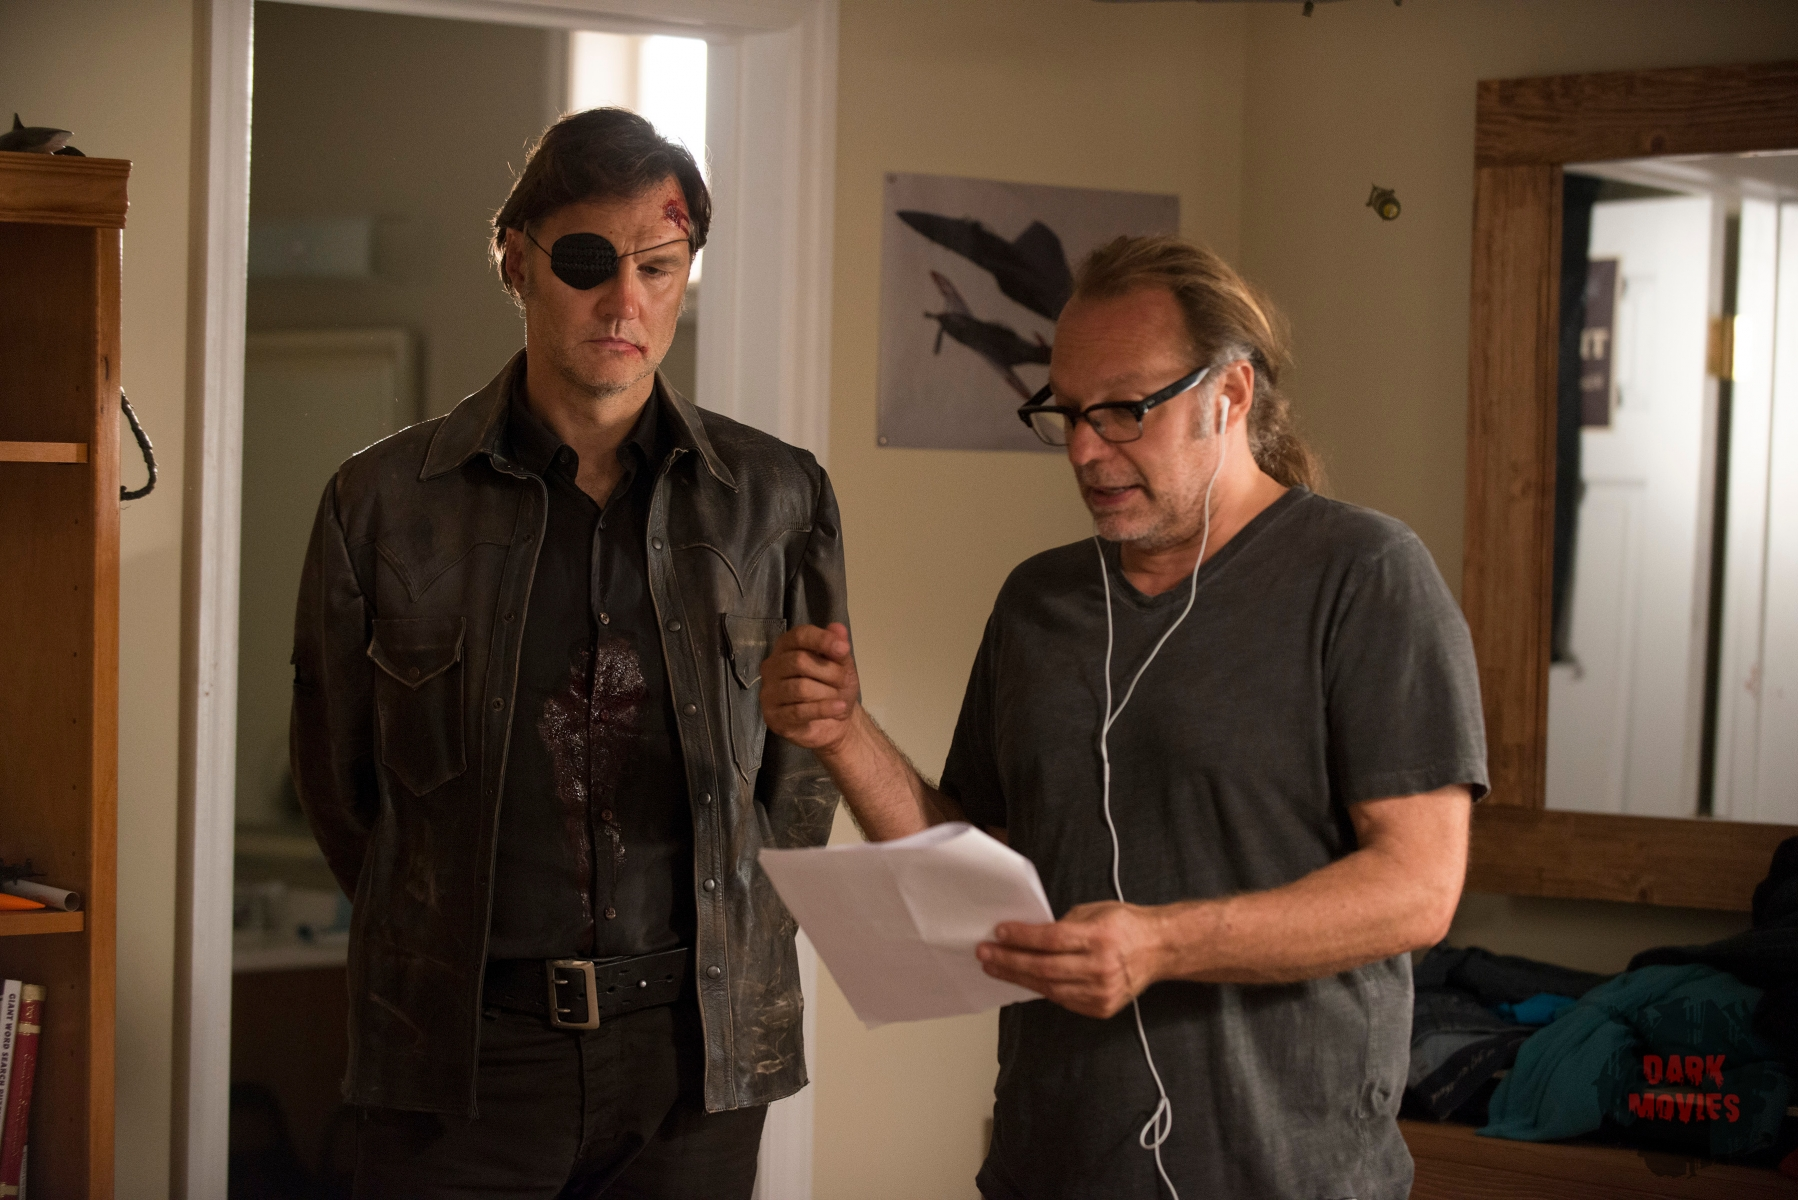 David Morrissey and Greg Nicotero - The Walking Dead _ Season 5, Episode 9 _ BTS - Photo Credit: Gene Page/AMC